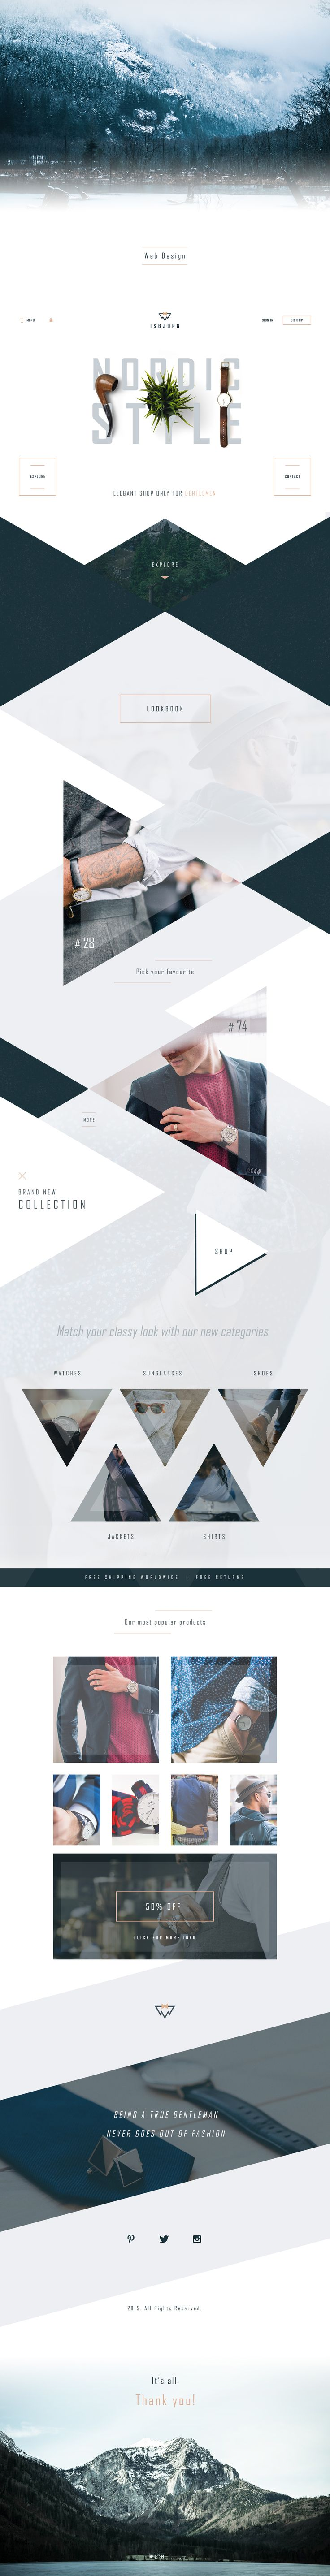 Isbjørn - Gentleman's Store Ui design concept and styling on Behance